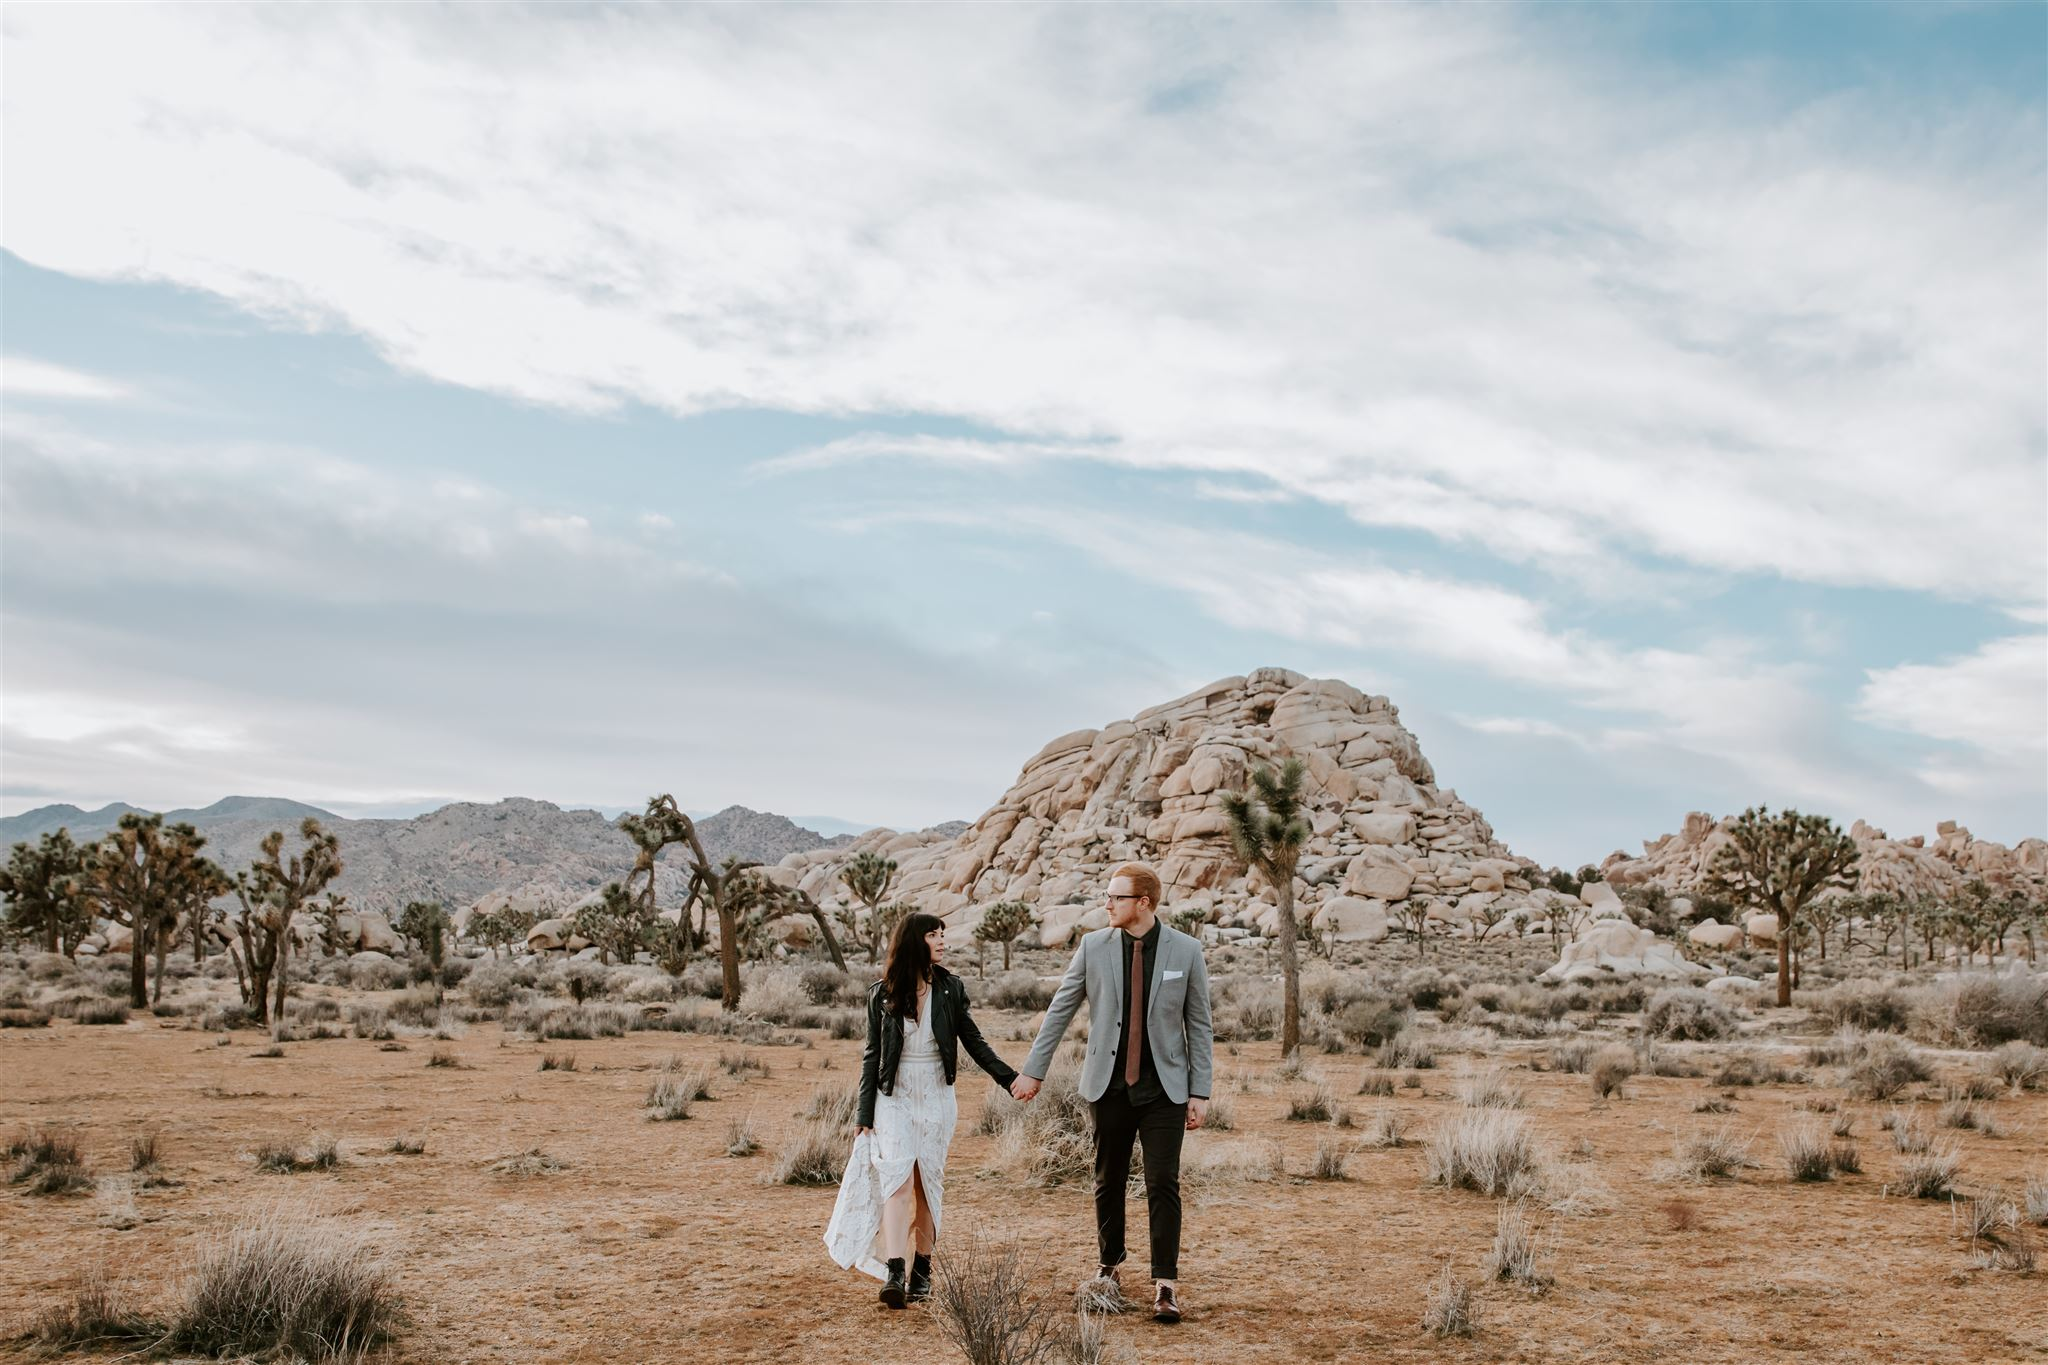 Joshua Tree CA Elopement Wedding  Photographer May Iosotaluno 24.jpg